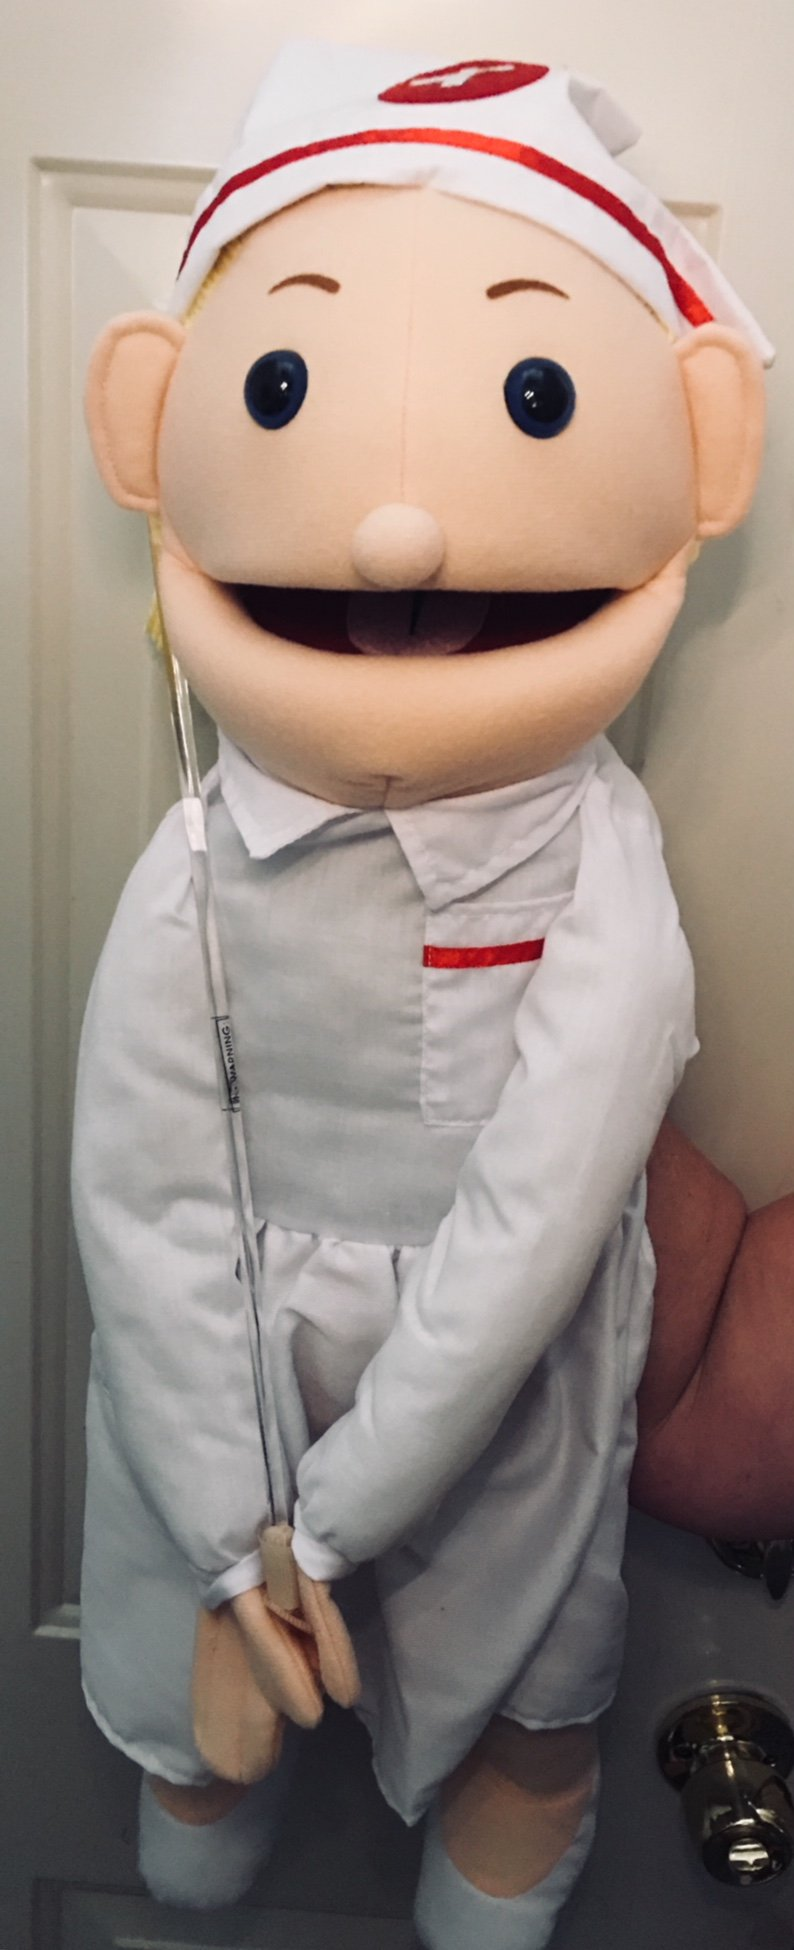 28'' Blonde Nurse Puppet, Full Body, Ventriloquist Style Puppet by Puppets4u (Image #4)